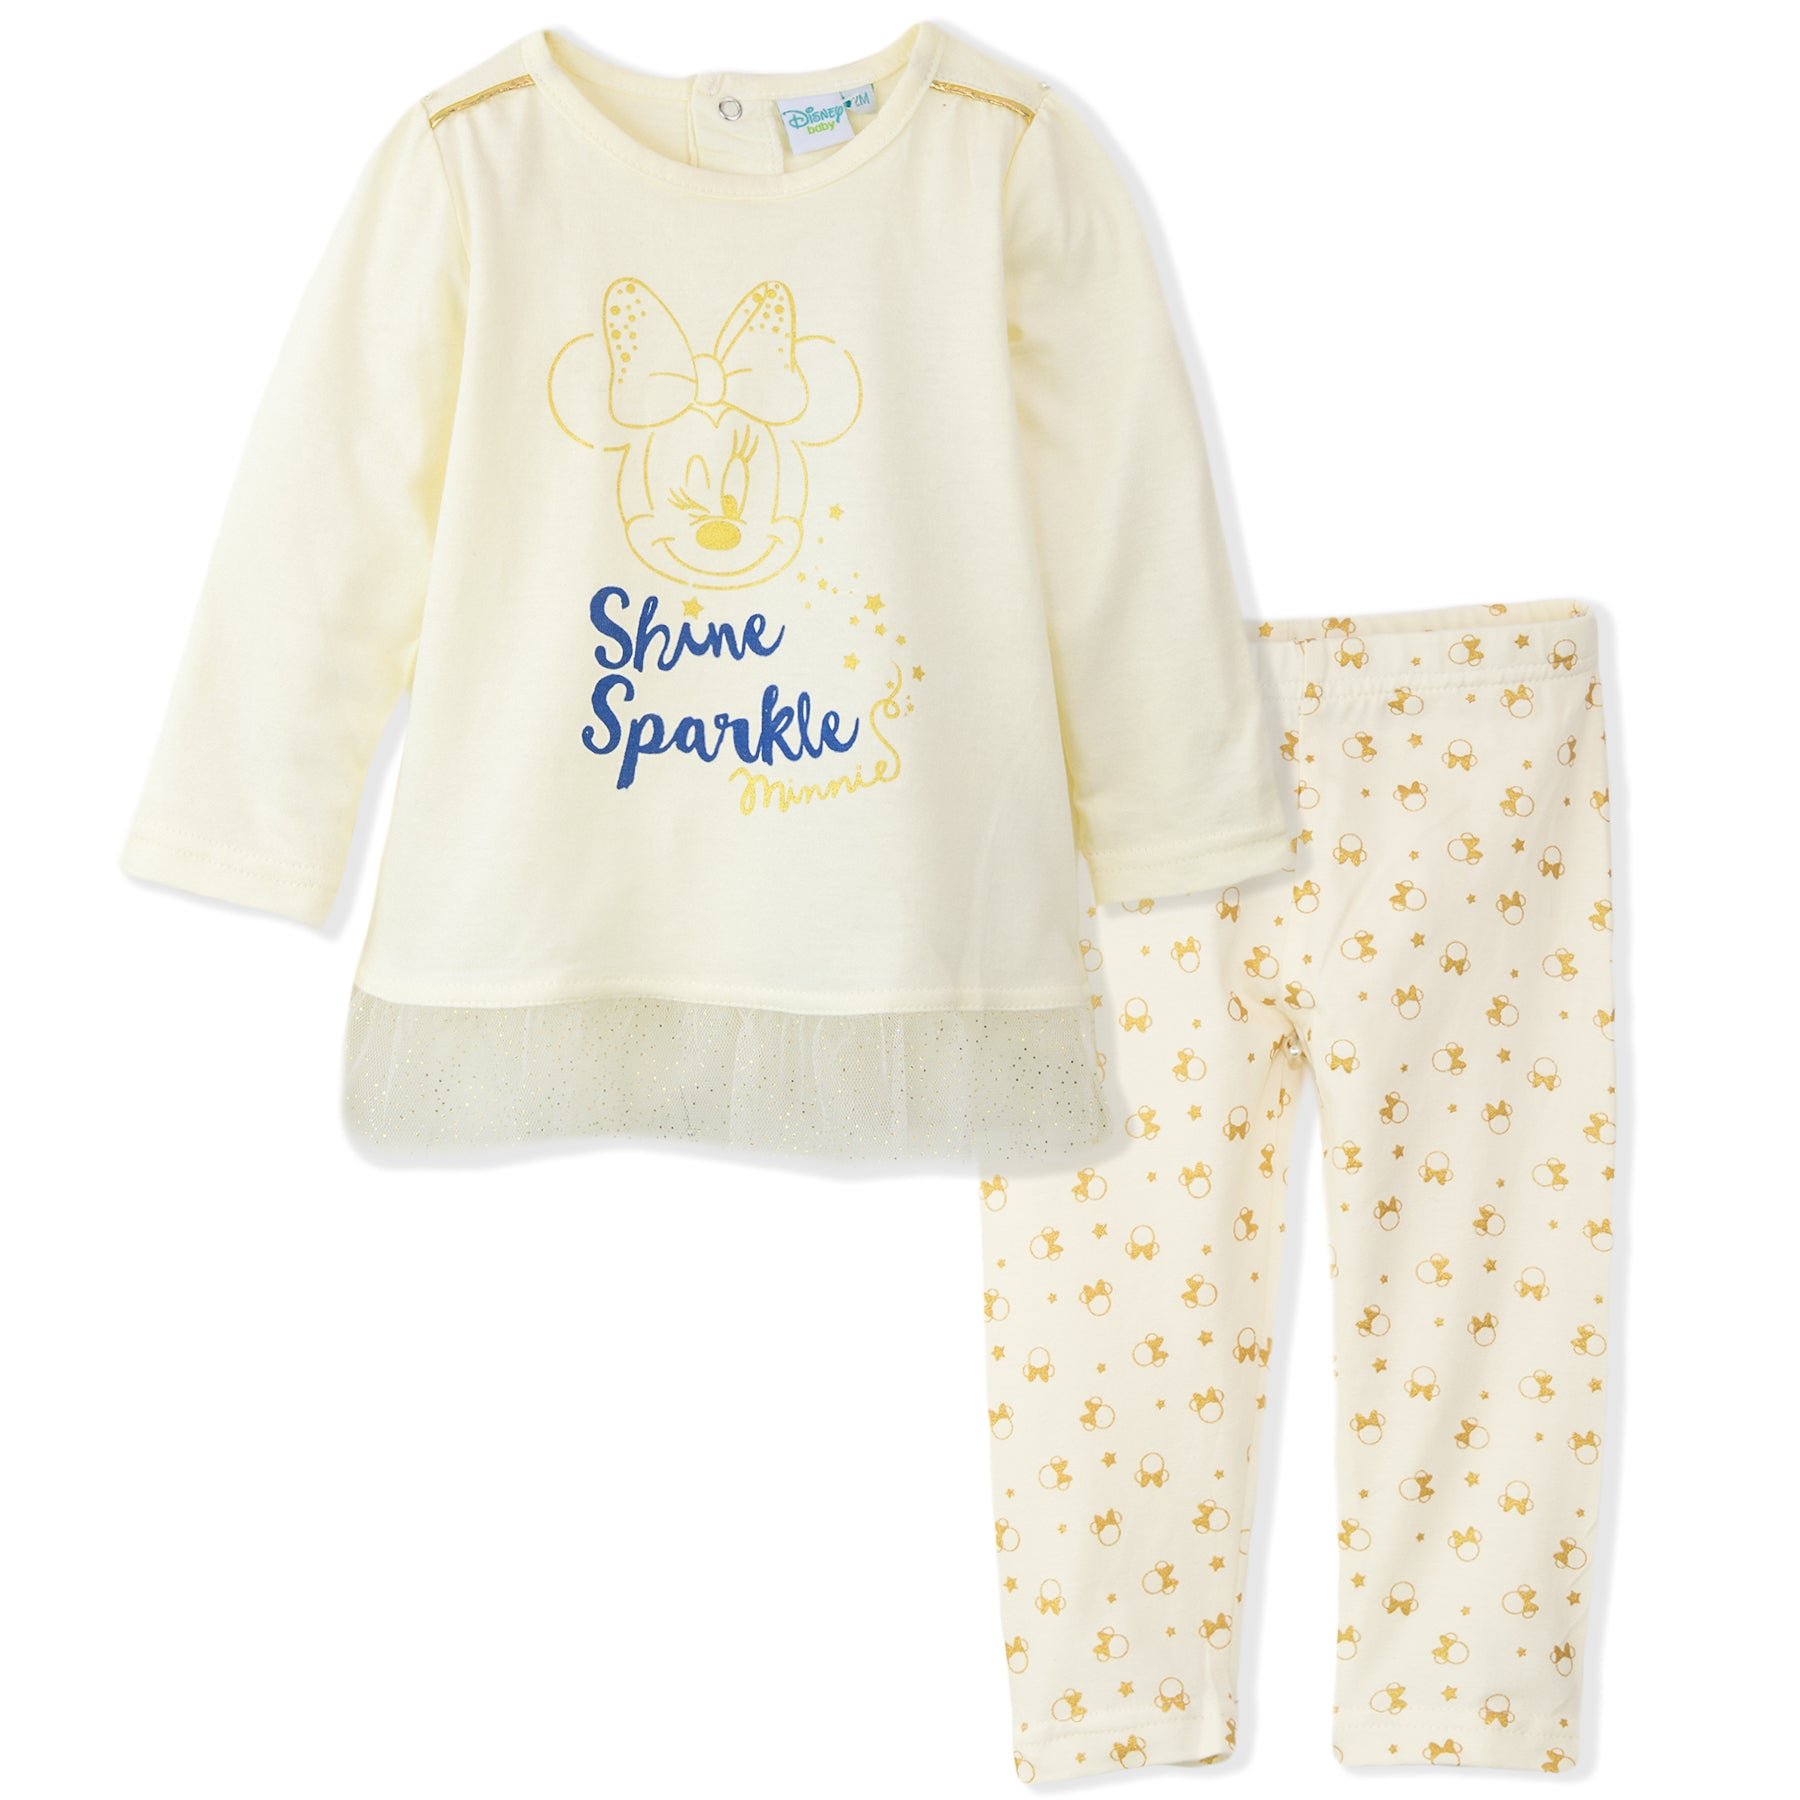 Disney Minnie Mouse Baby Girls Outfit Clothes Set Long Top and Leggings 9-36 Months - Beige